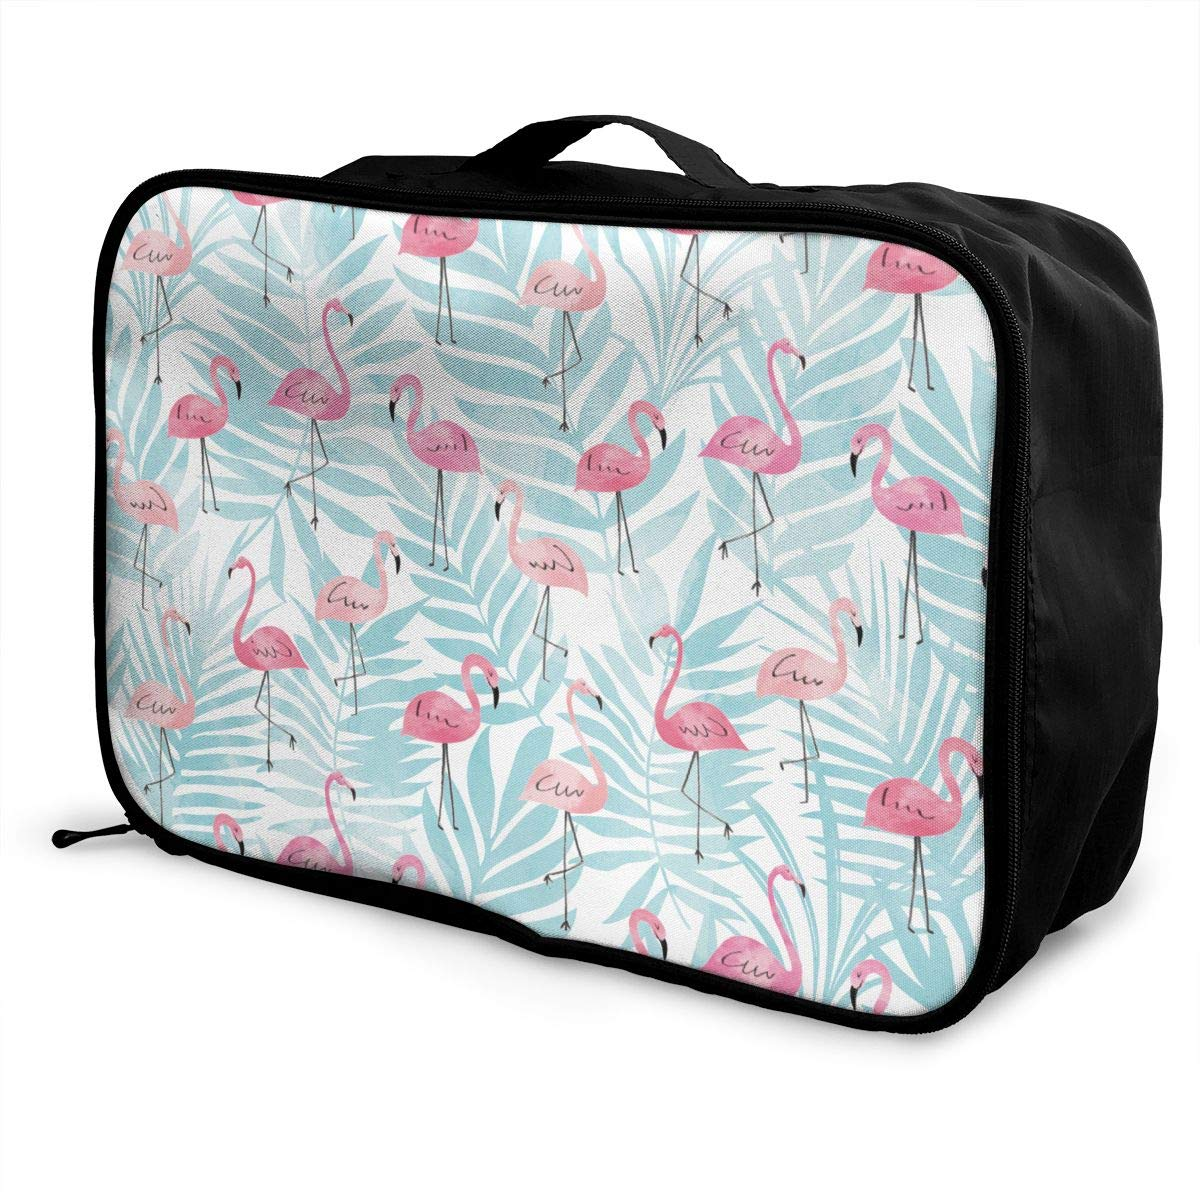 YueLJB Pink Flamingo Leaves Lightweight Large Capacity Portable Luggage Bag Travel Duffel Bag Storage Carry Luggage Duffle Tote Bag